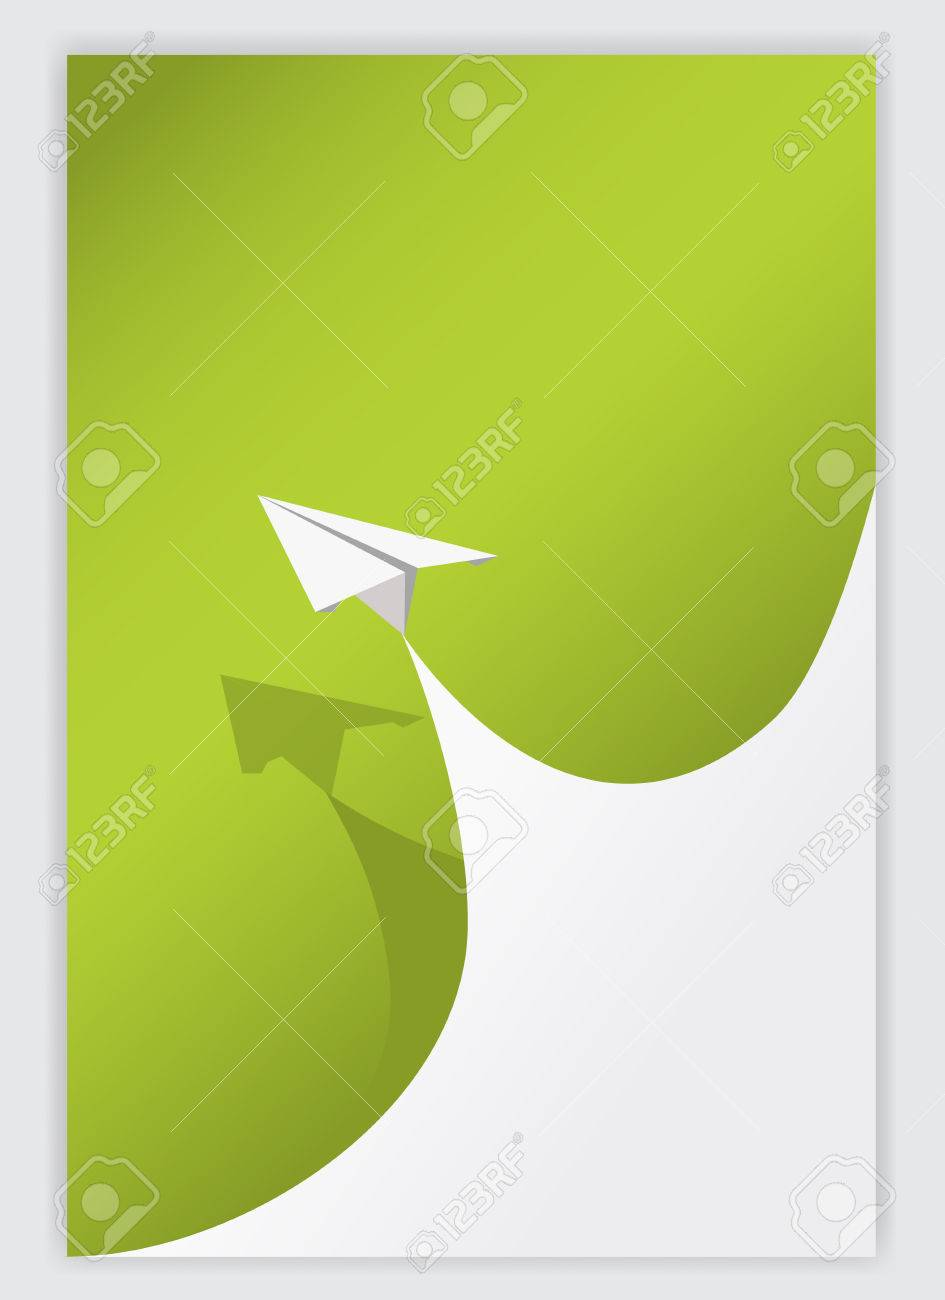 Libro Verde Enrollamiento Esquina Background.vector Blanco Y Avión ...